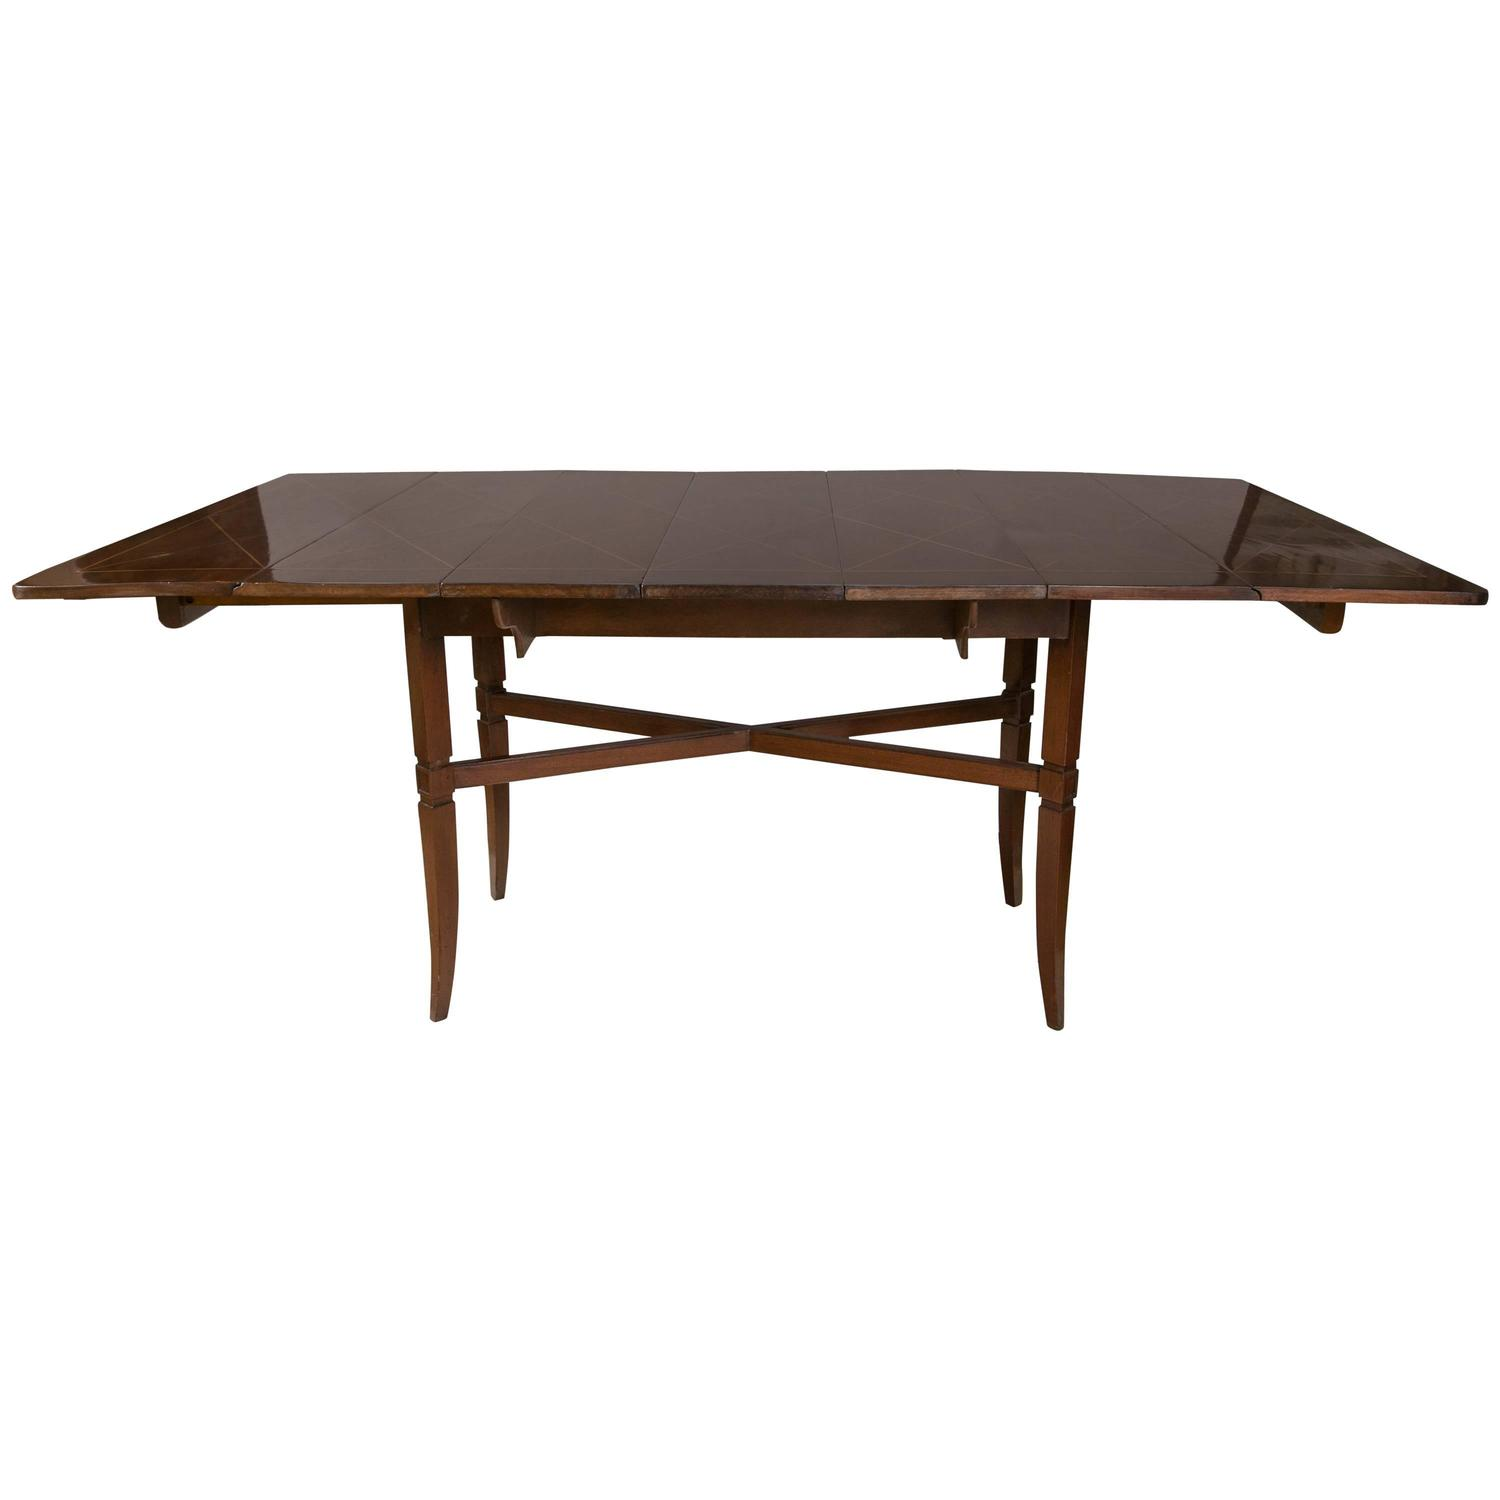 Charak Modern For Tommi Parzinger Drop Side Dining Table For Sale At 1stdibs